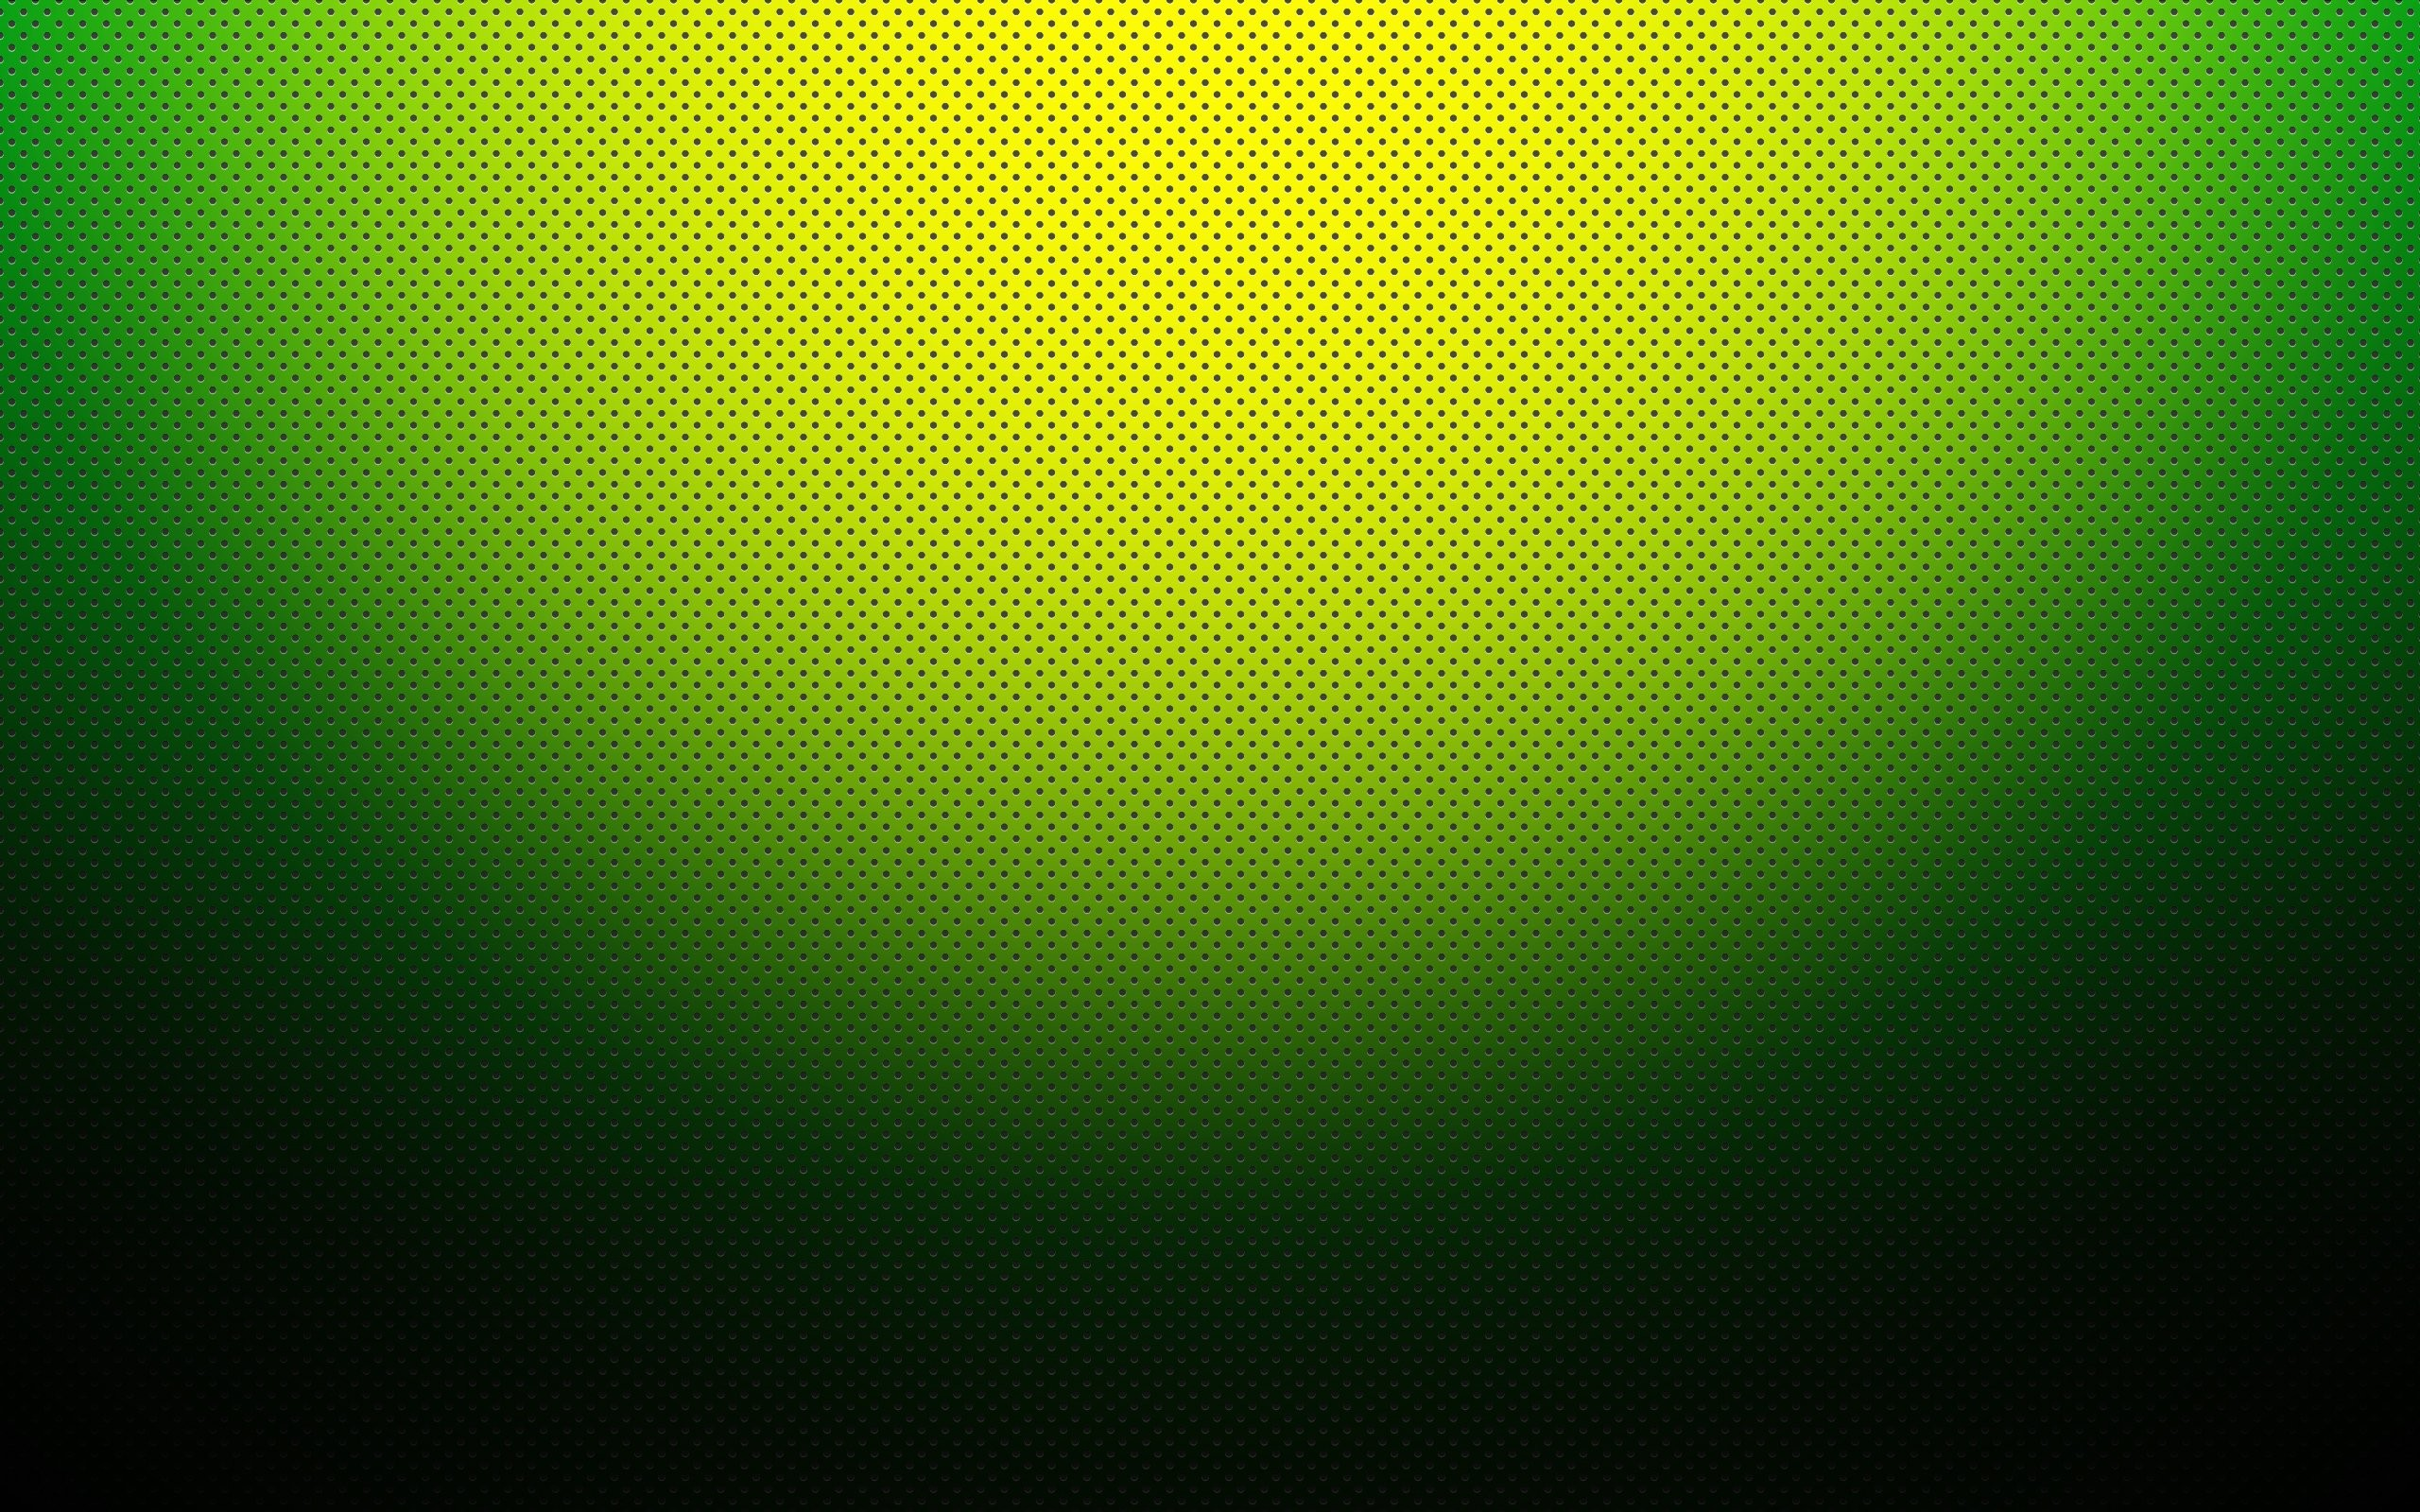 2560x1600 full hd abstract, green, free,green, windows, pictures, background, mobile  wallpaper, textures_x Wallpaper HD